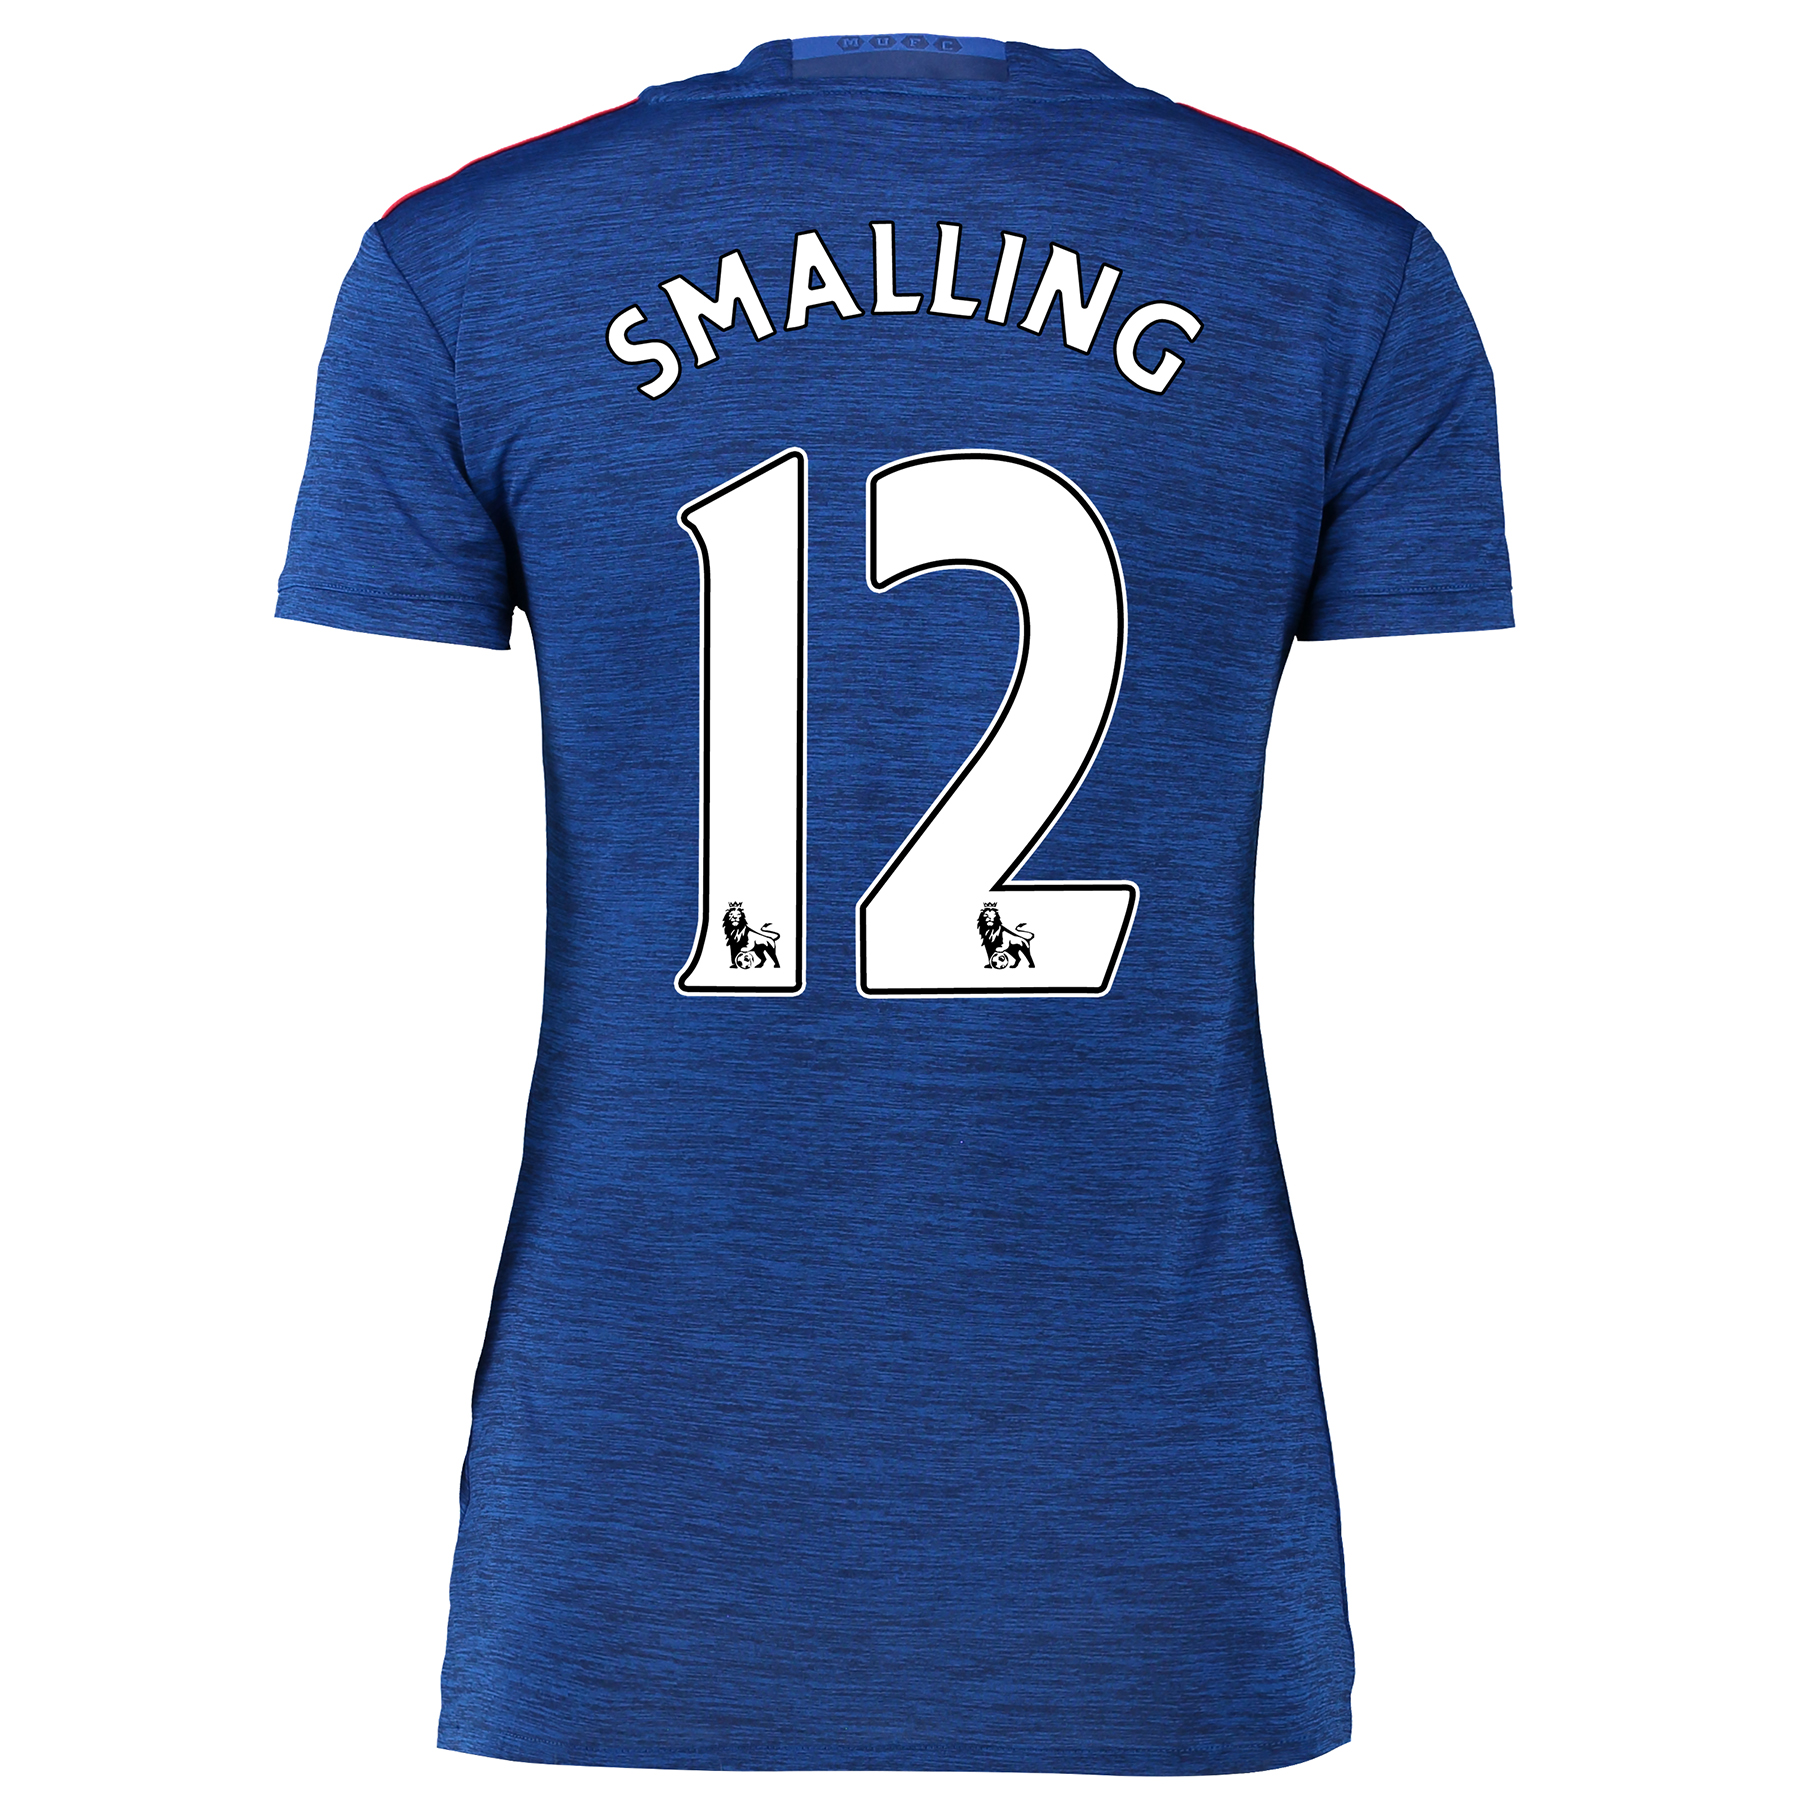 Manchester United Away Shirt 2016-17 - Womens with Smalling 12 printin